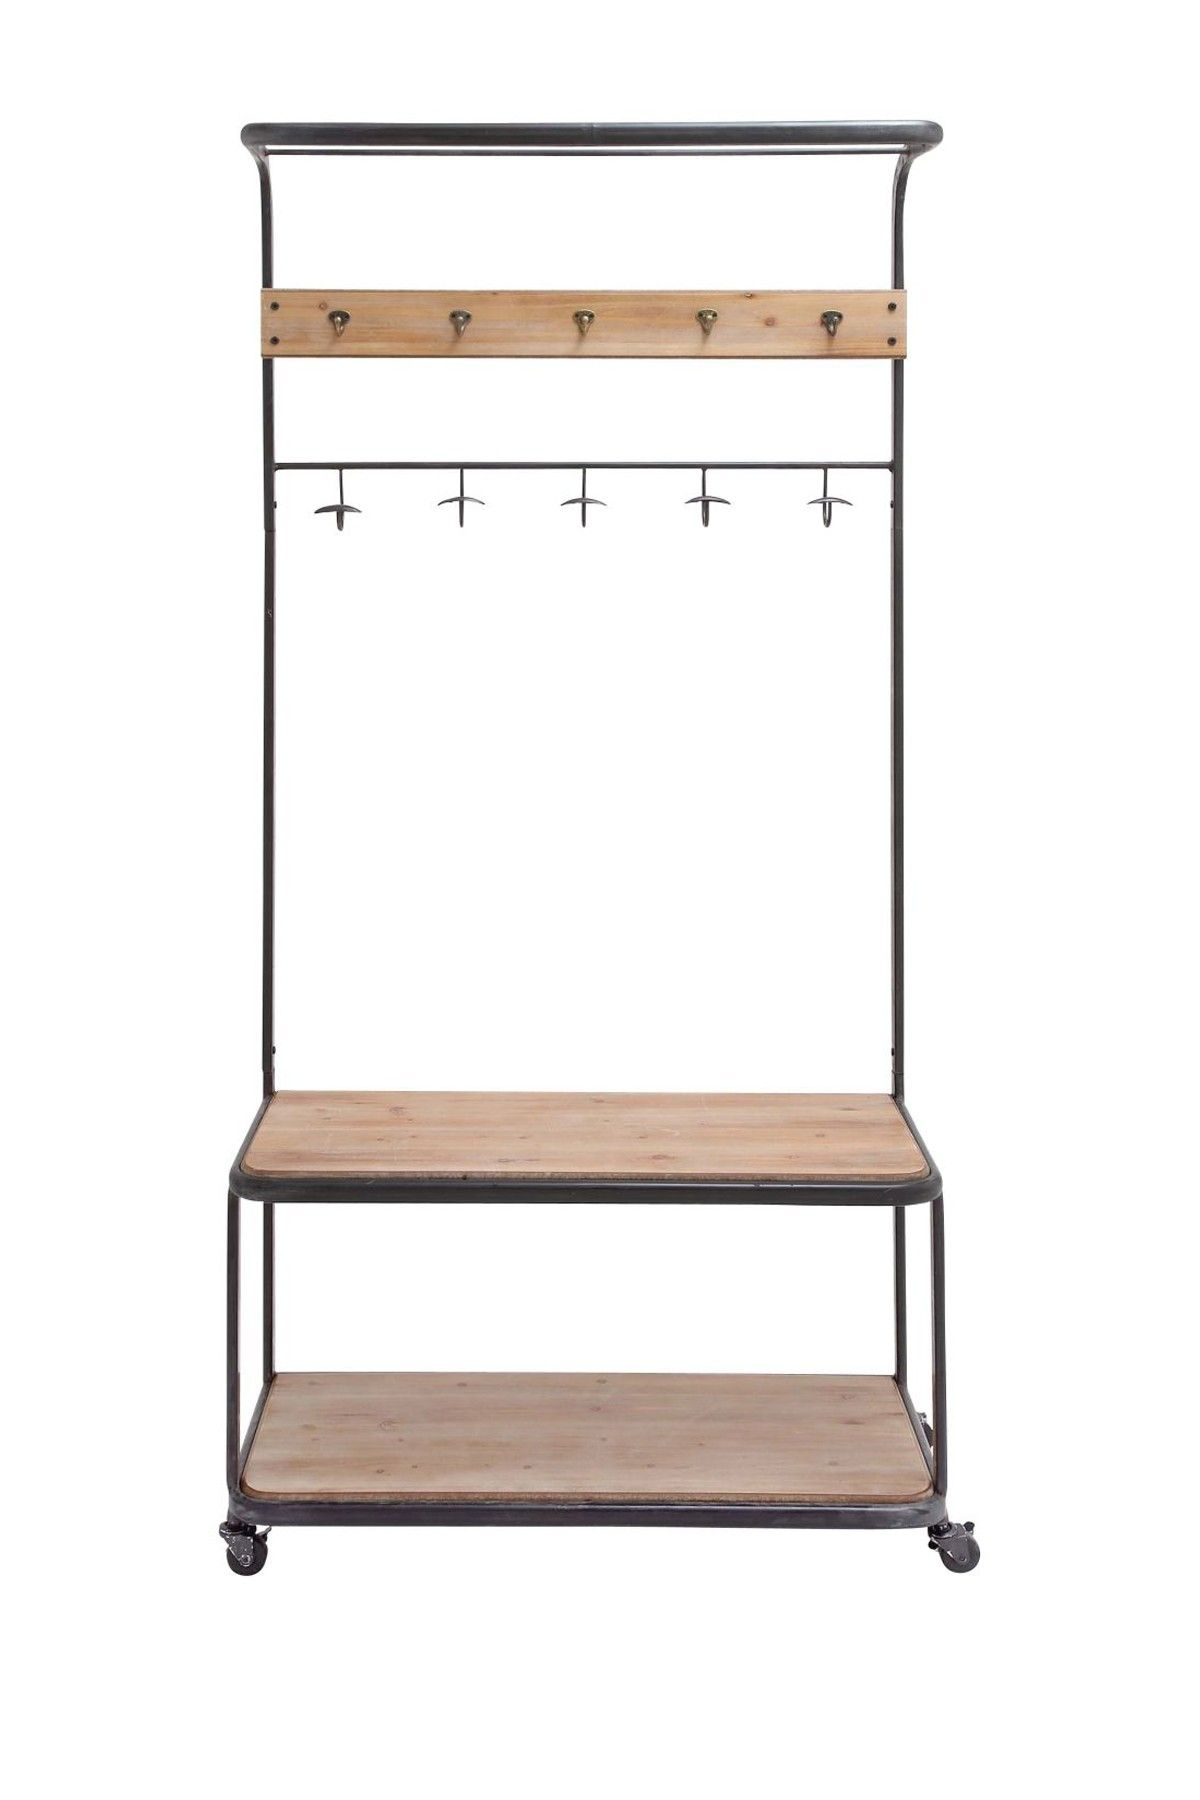 An Old School Style Metal Frame Bench With Coat Hooks And 2 Mango Wood - Metal wood clothes rack something like this by back door